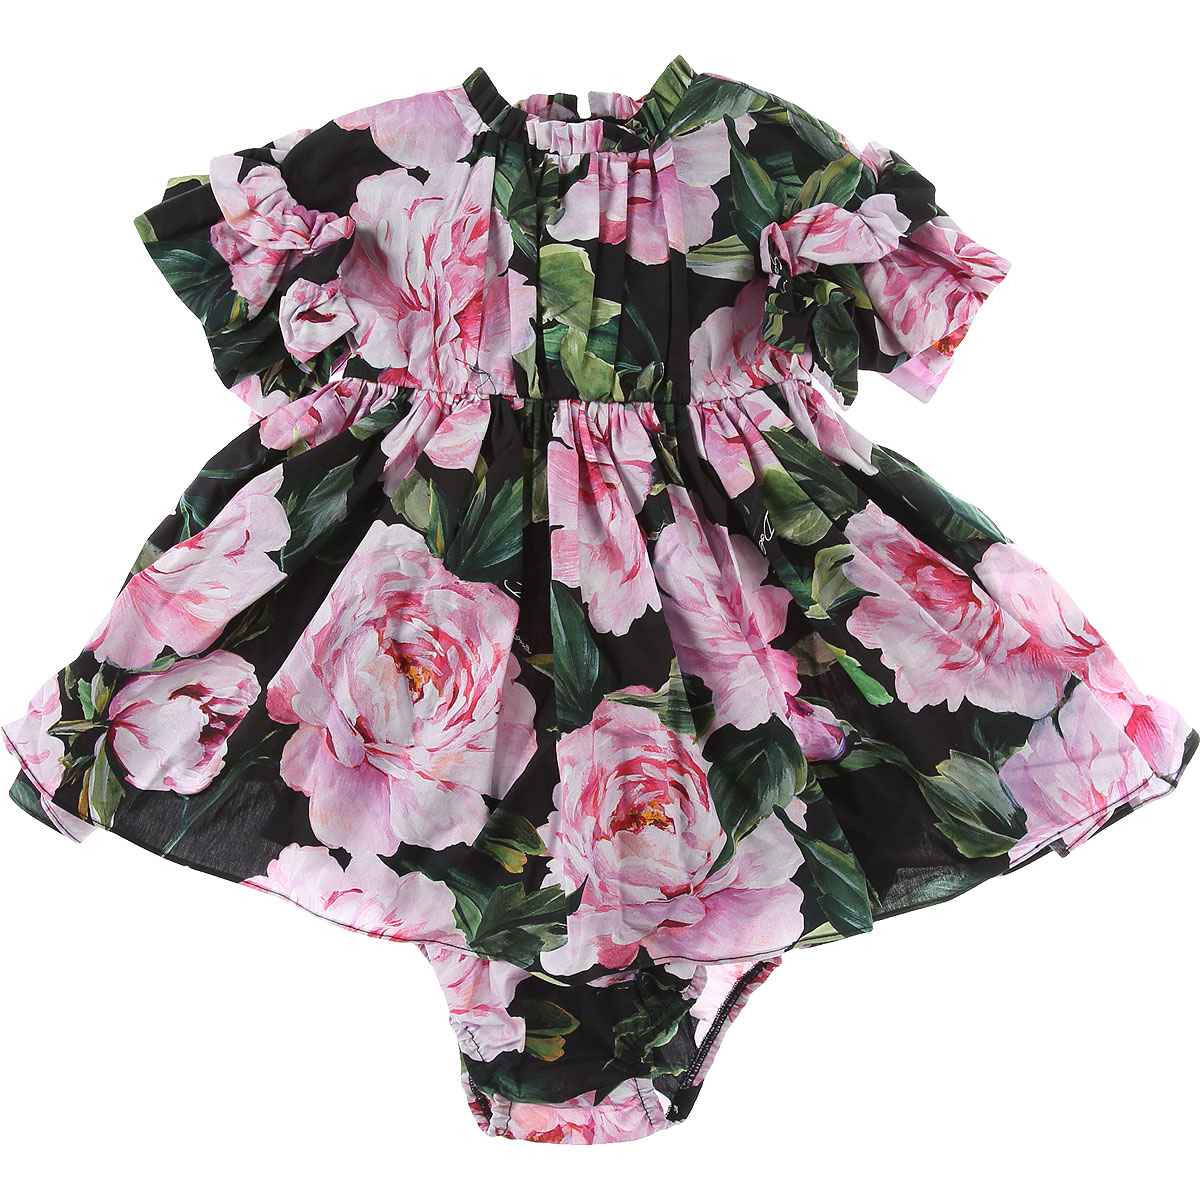 Dolce & Gabbana Baby Dress for Girls On Sale in Outlet, Pink, Cotton, 2019, 12M 18M 24M 9M